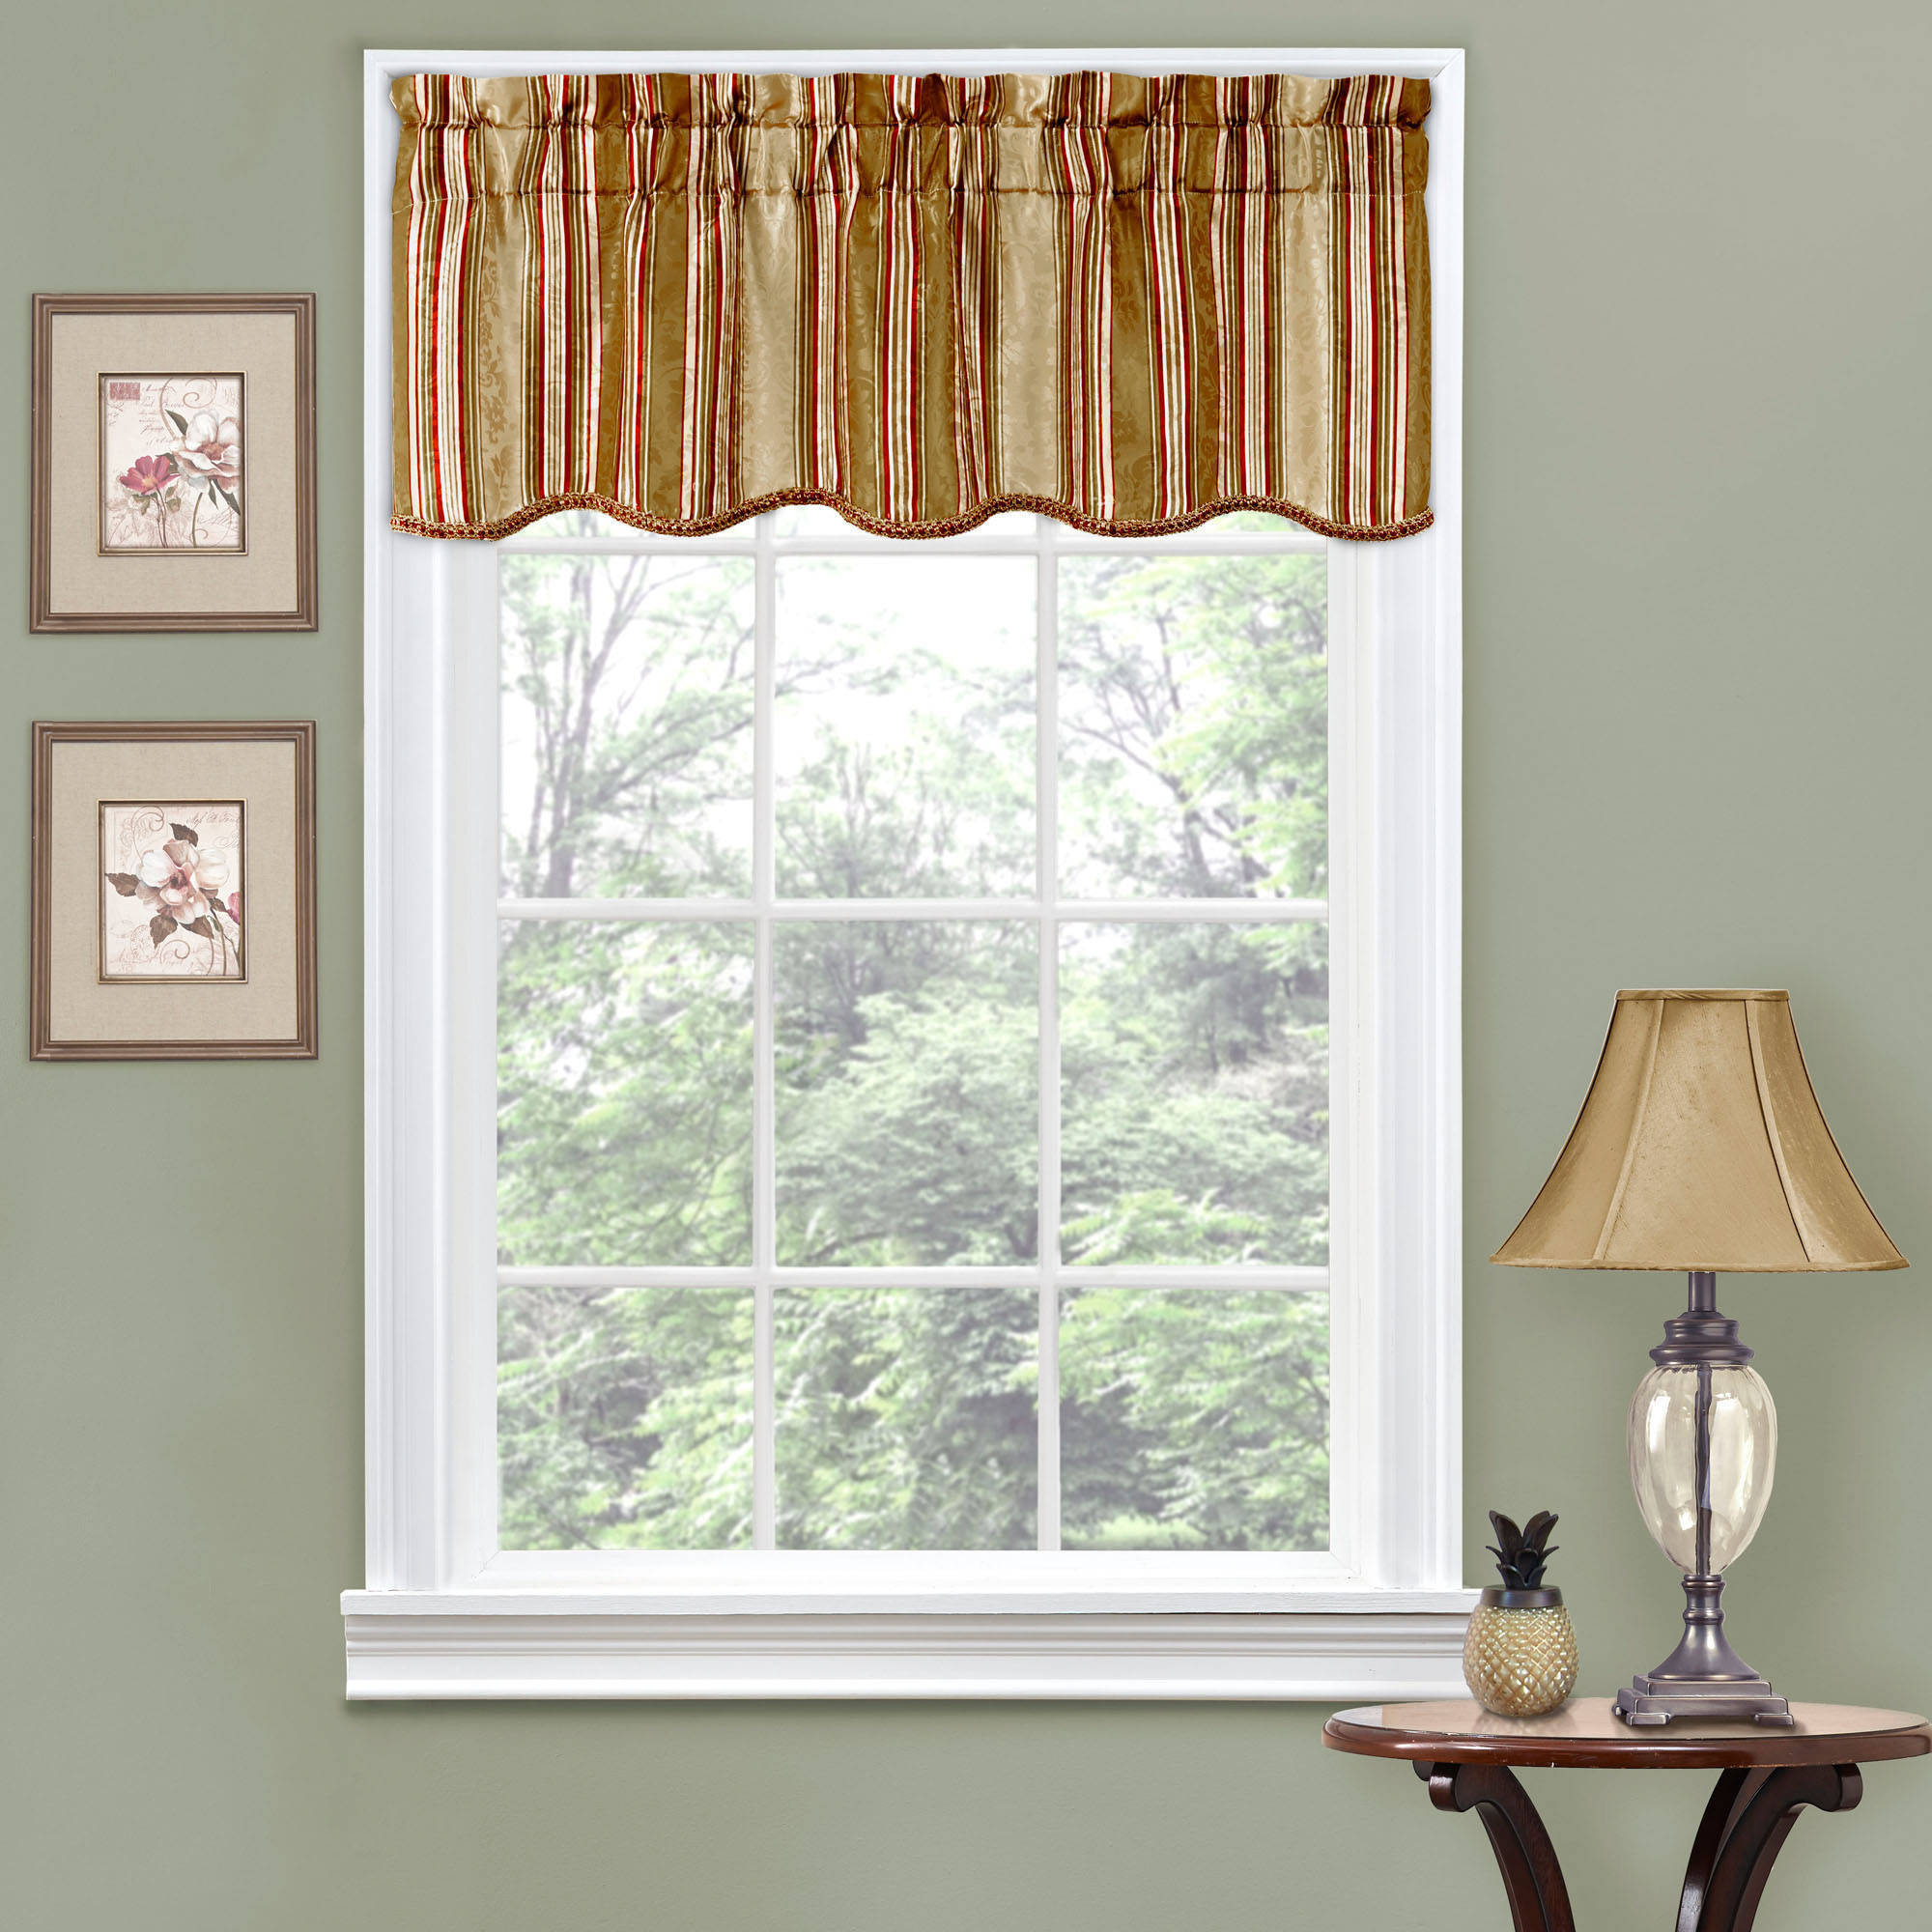 Excellent Kitchen Valance Red Curtains Make Burlap For Throughout Modern Subtle Texture Solid White Kitchen Curtain Parts With Grommets Tier And Valance Options (View 13 of 20)